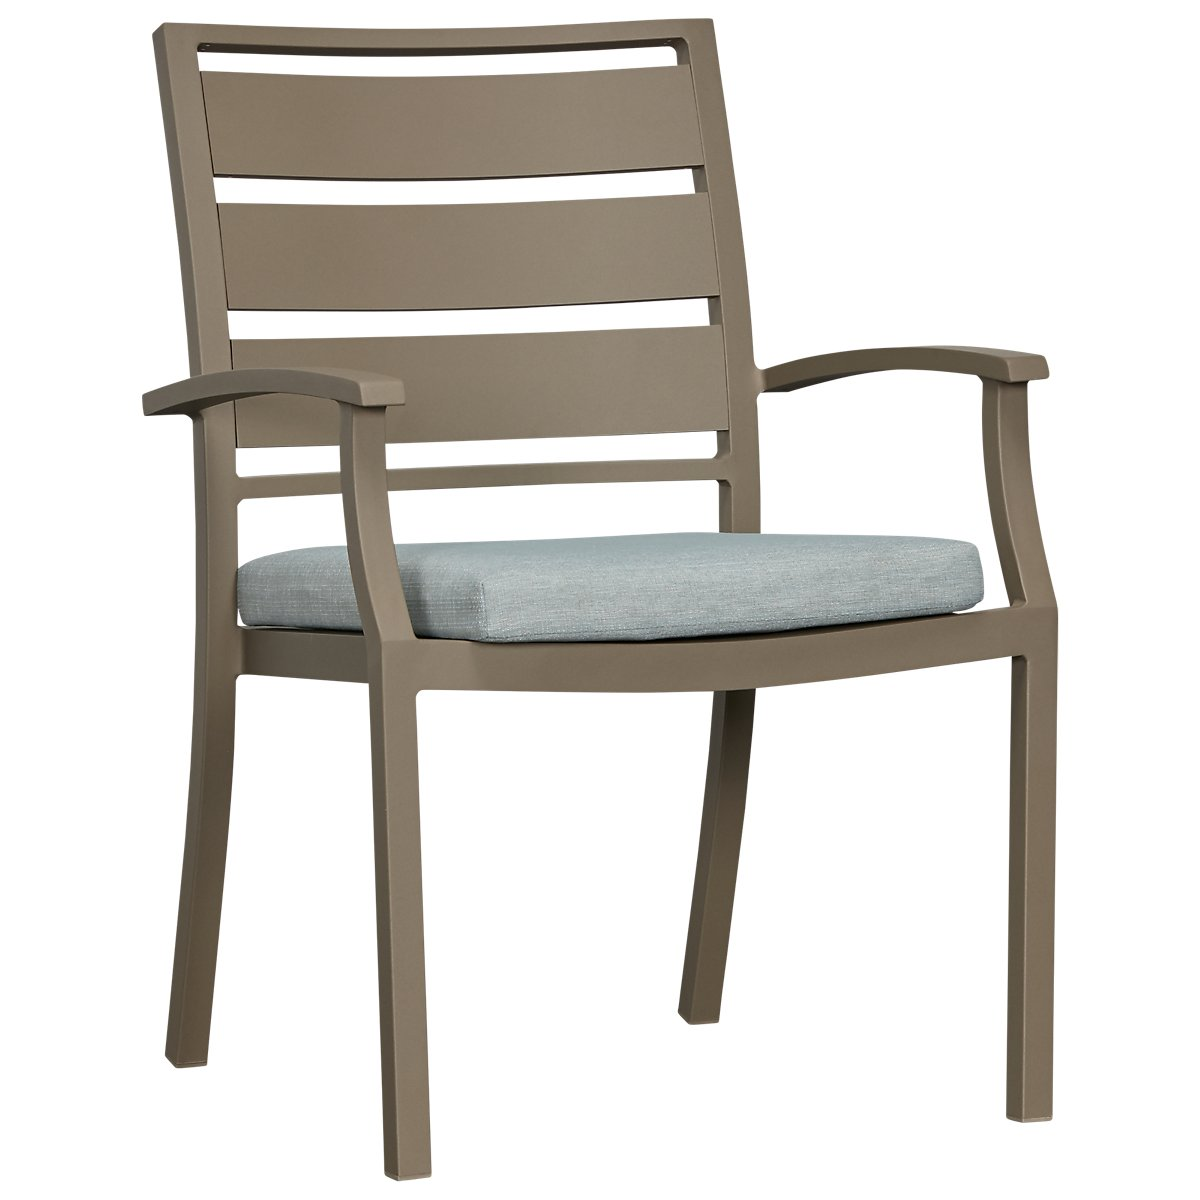 Raleigh Teal Aluminum Arm Chair | Outdoor - Dining Chairs ...